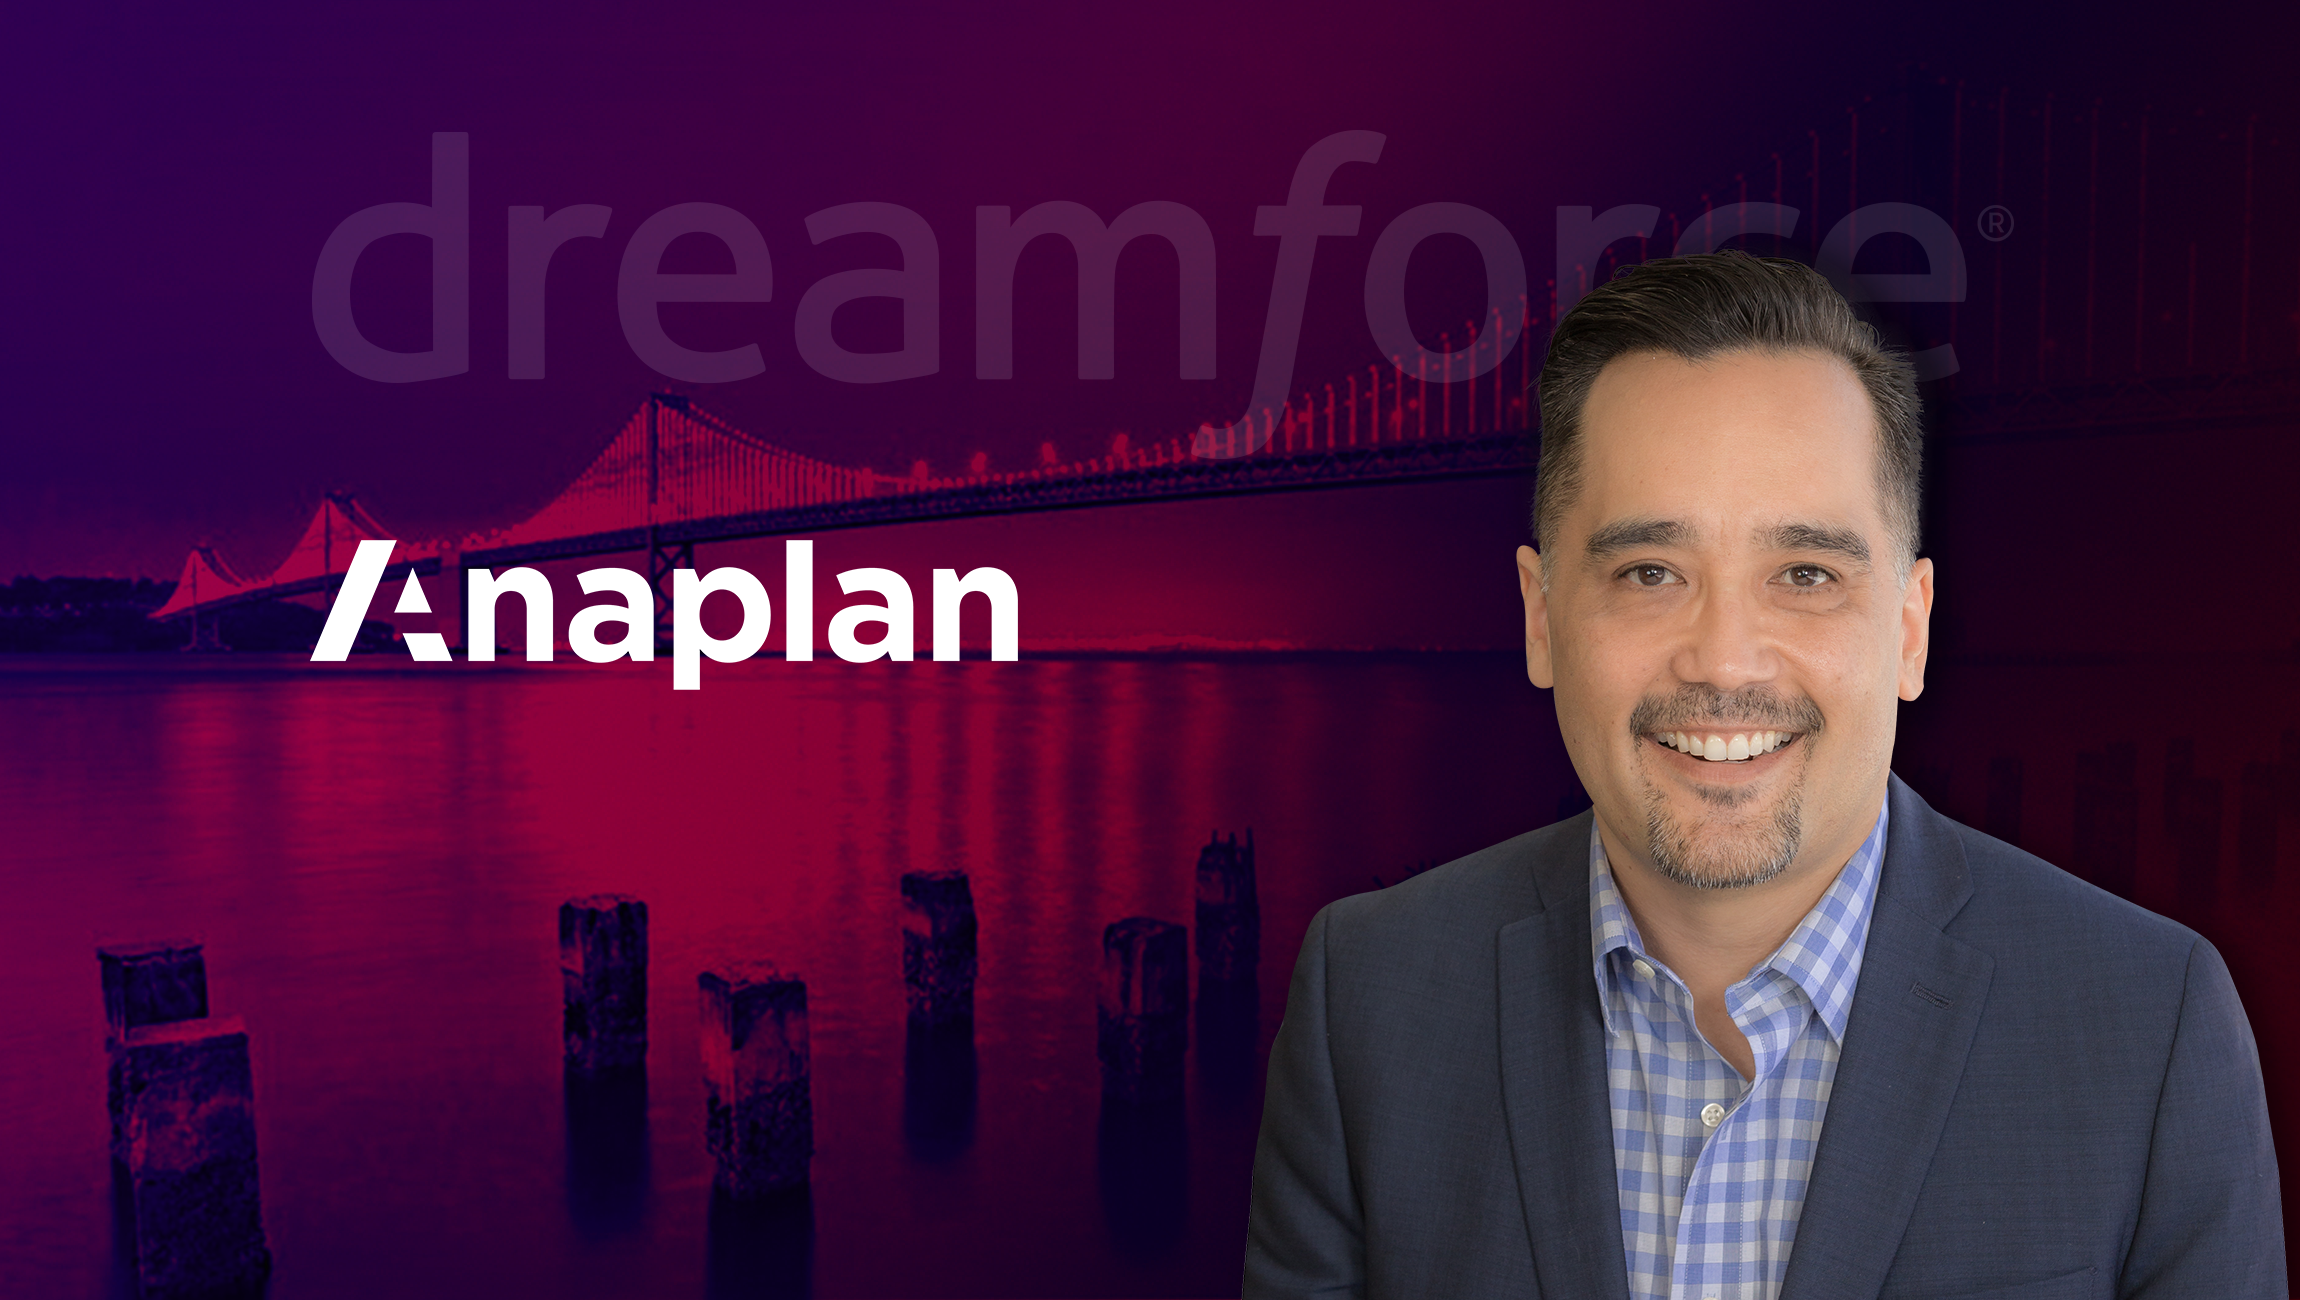 Dreamforce with Jason Loh, Global Head of Sales Solutions at Anaplan